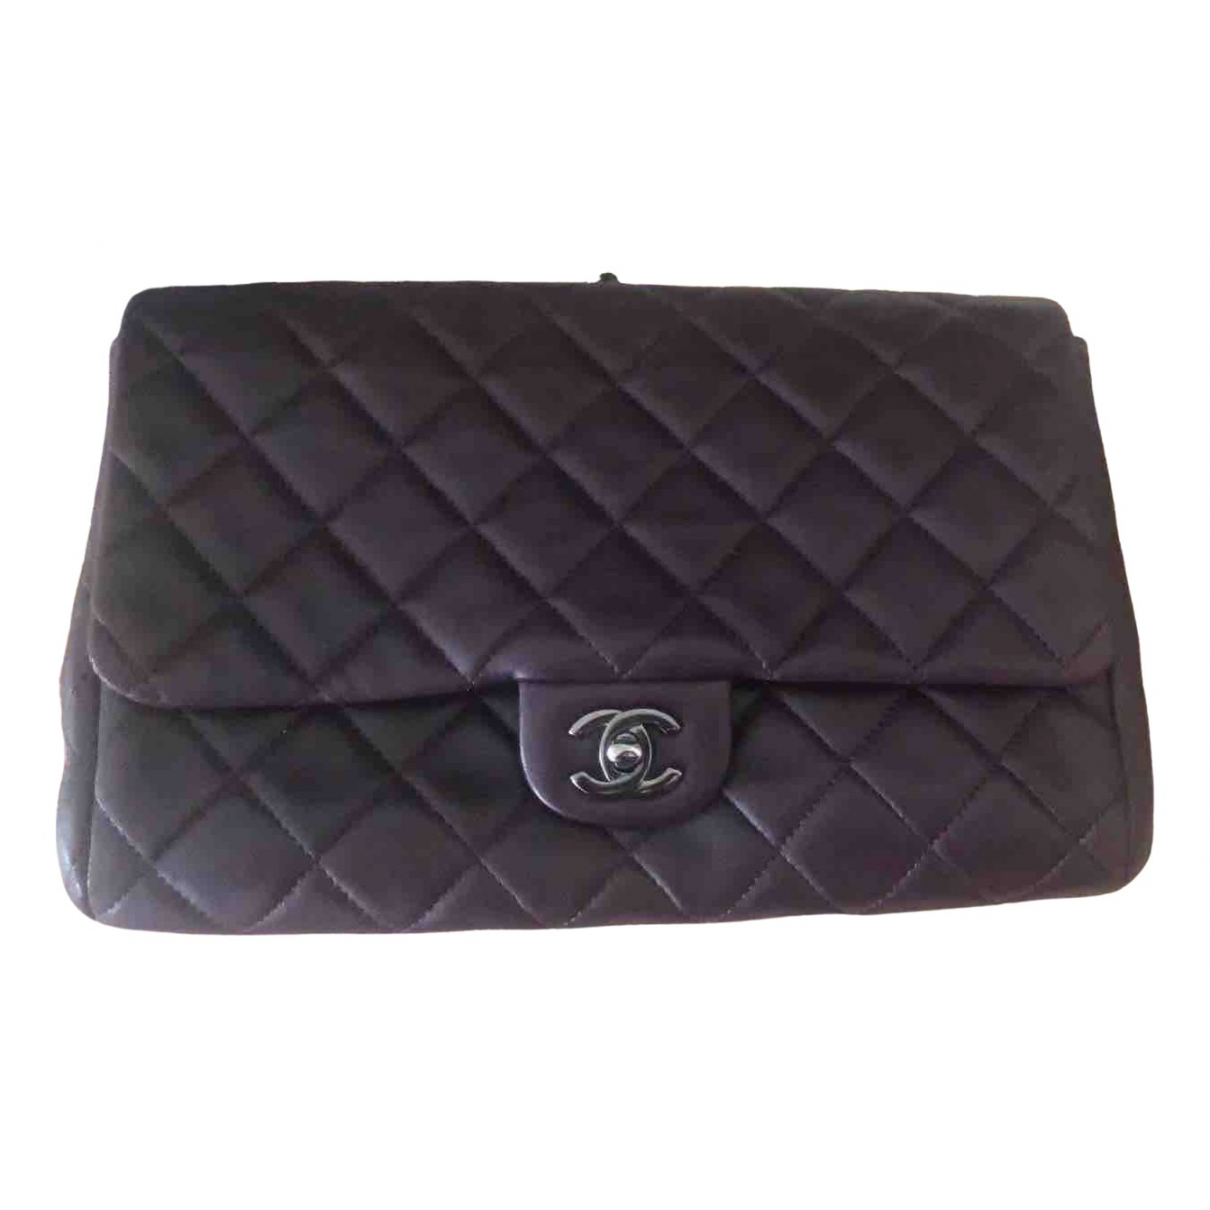 Chanel Timeless/Classique Burgundy Leather handbag for Women \N